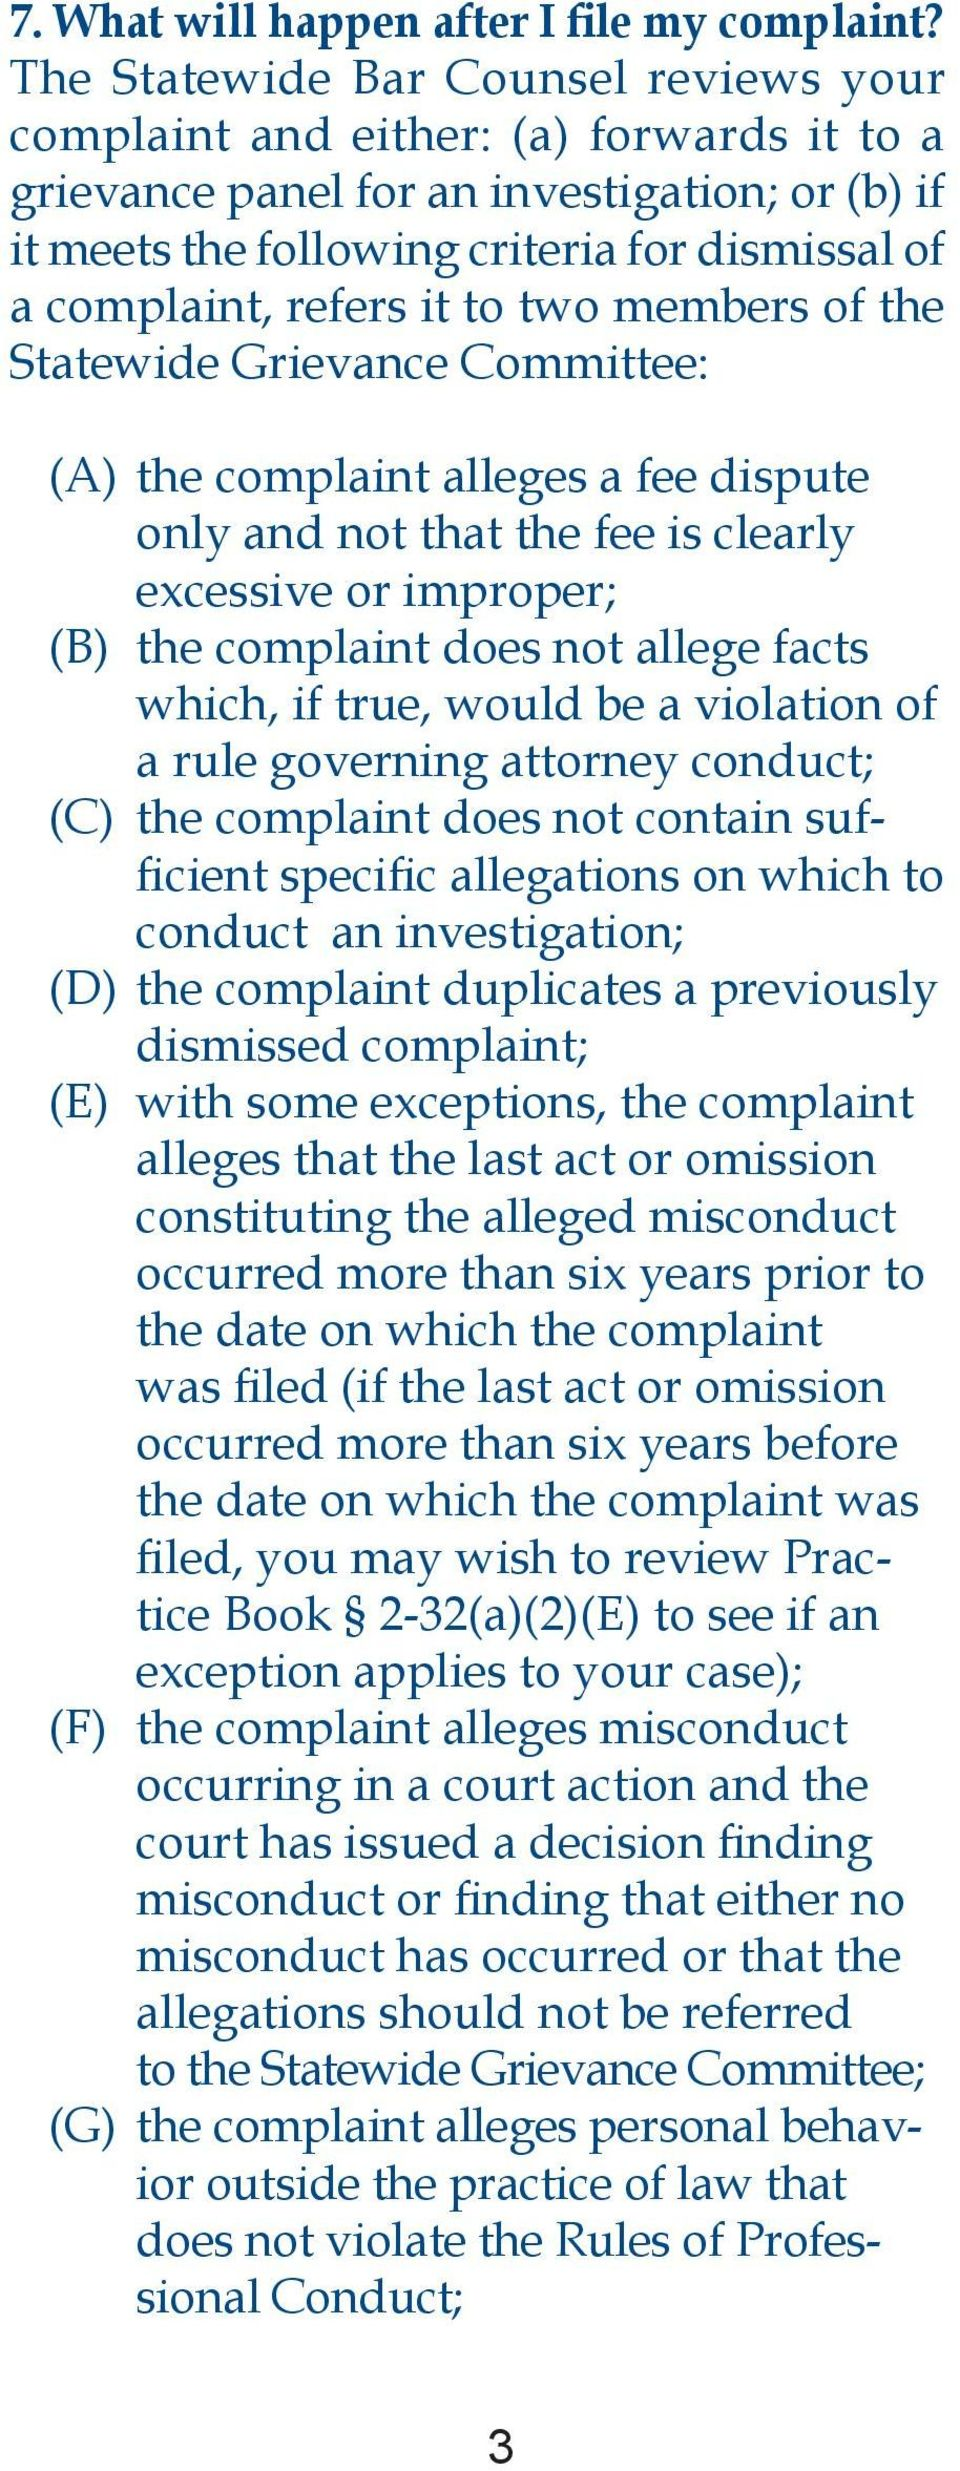 it to two members of the Statewide Grievance Committee: (A) the complaint alleges a fee dispute only and not that the fee is clearly excessive or improper; (B) the complaint does not allege facts